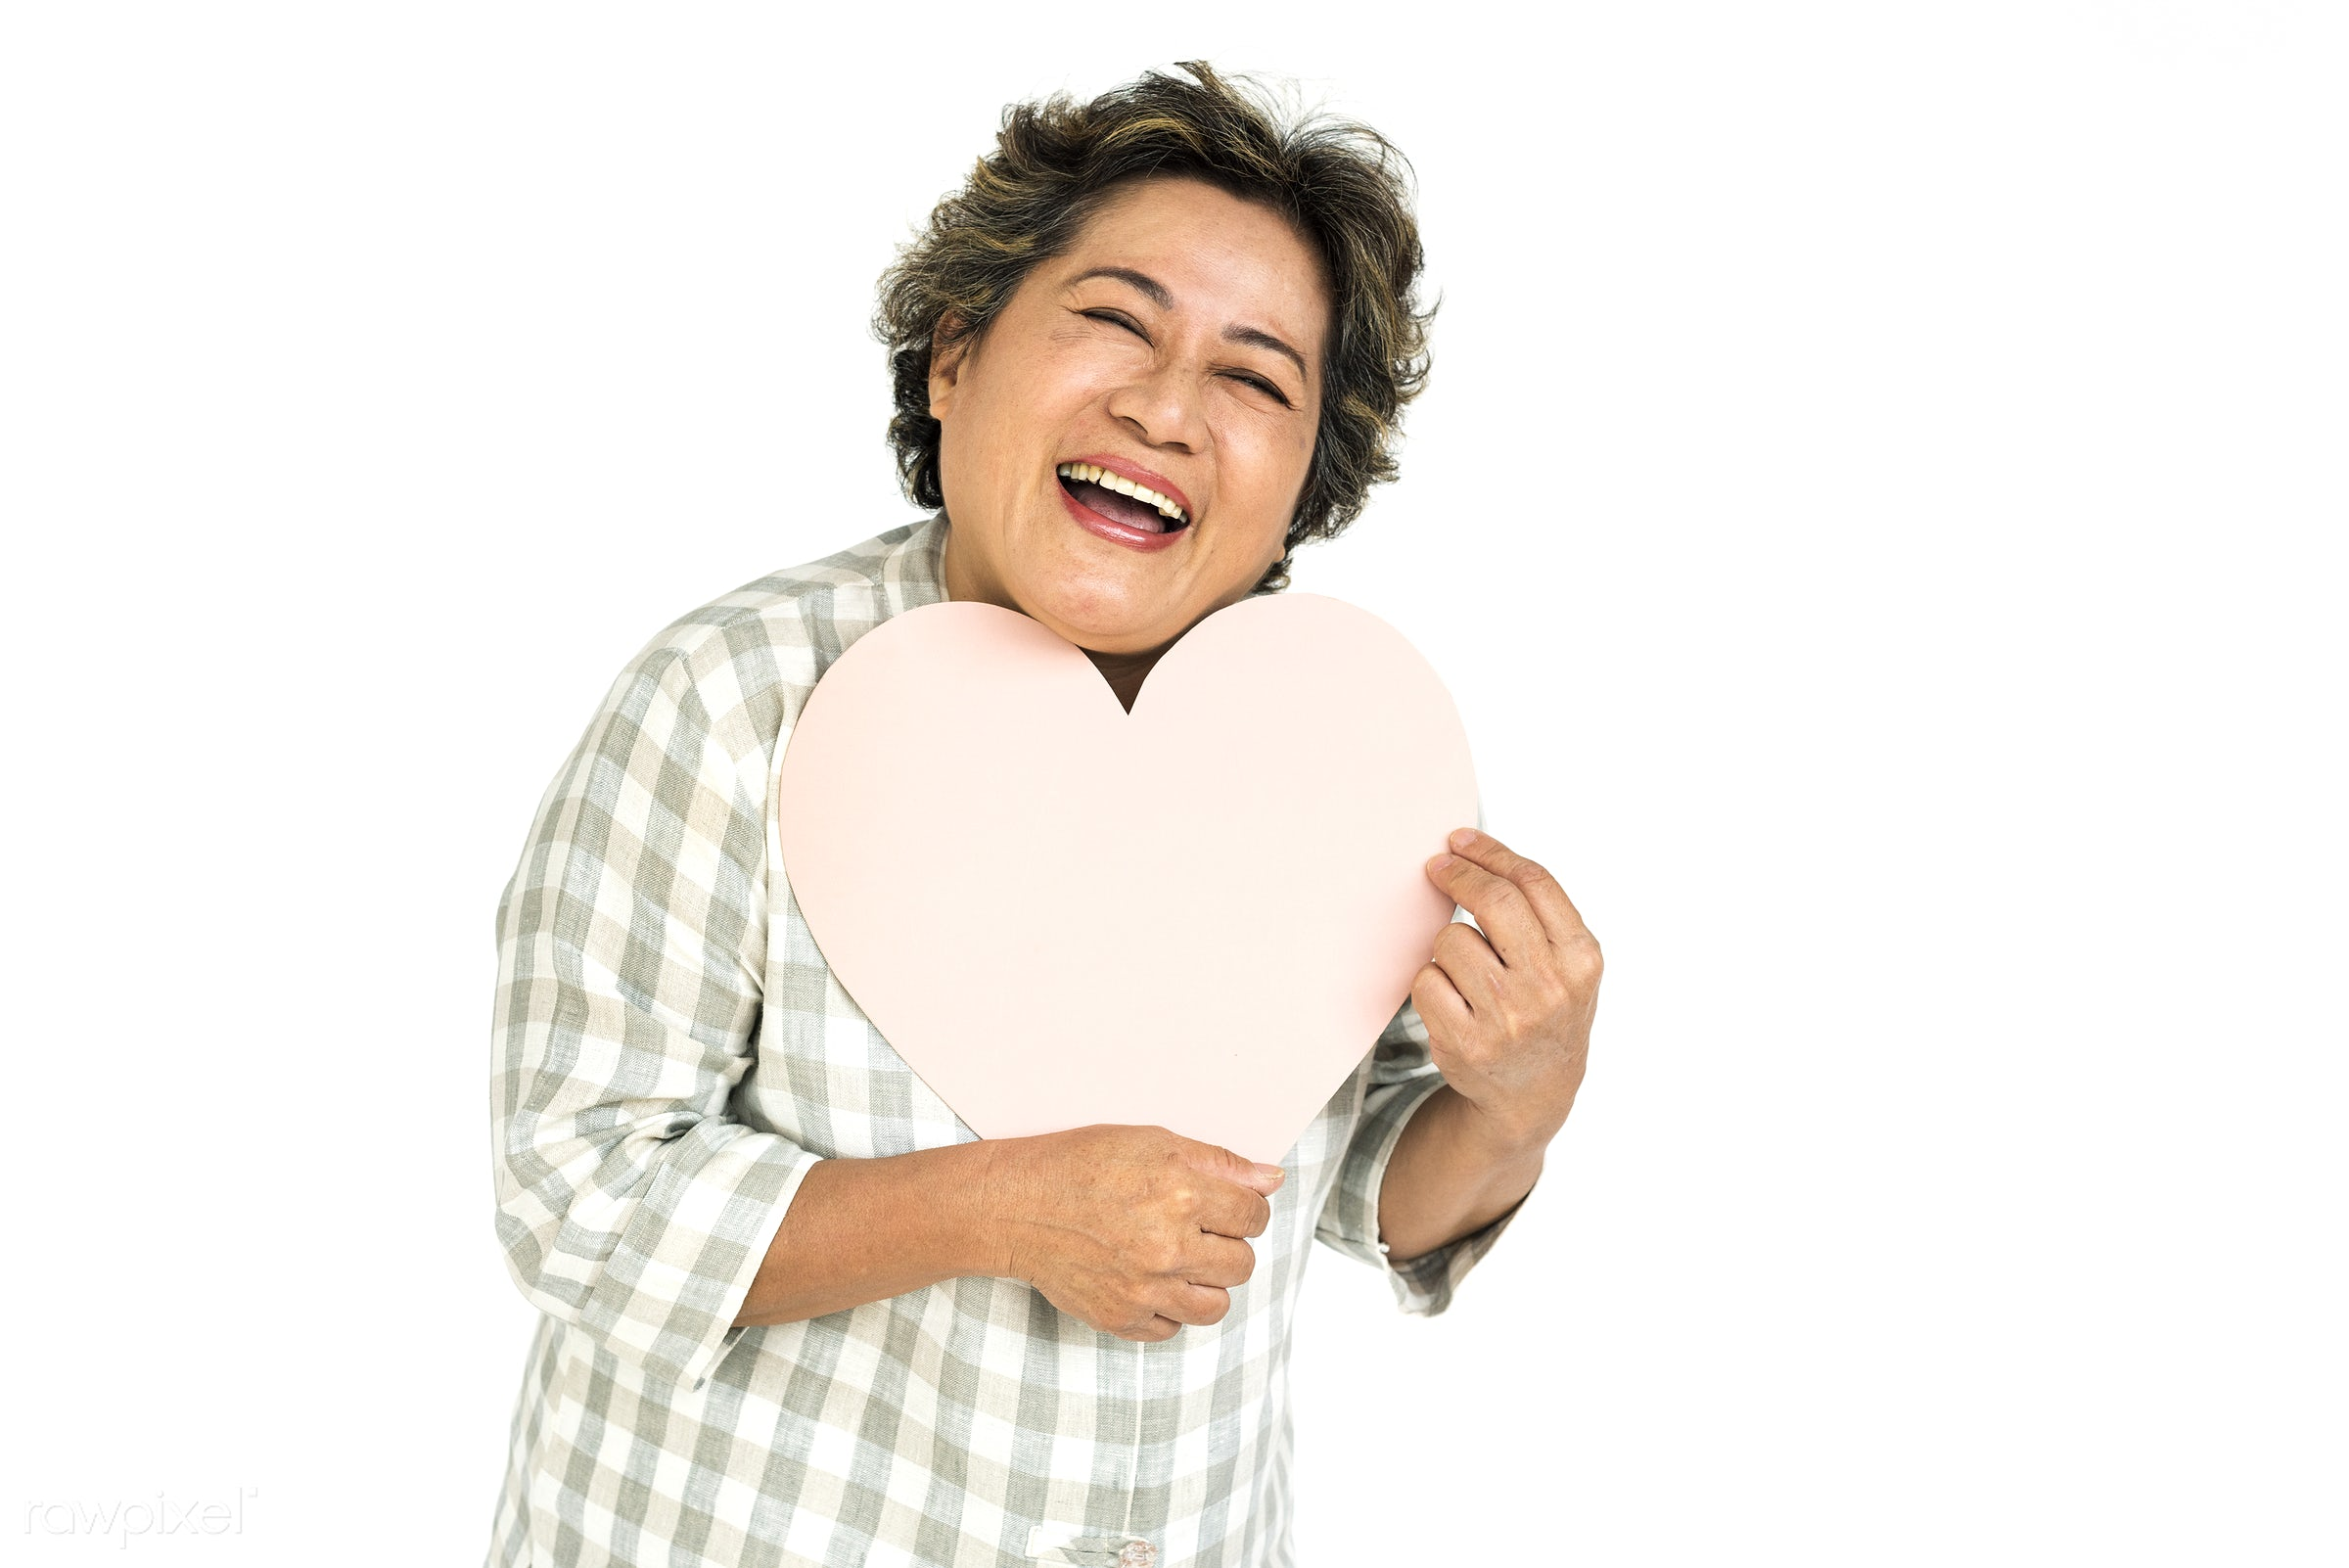 studio, expression, person, holding, people, asian, love, woman, care, cheerful, smiling, isolated, heart, white, happiness...